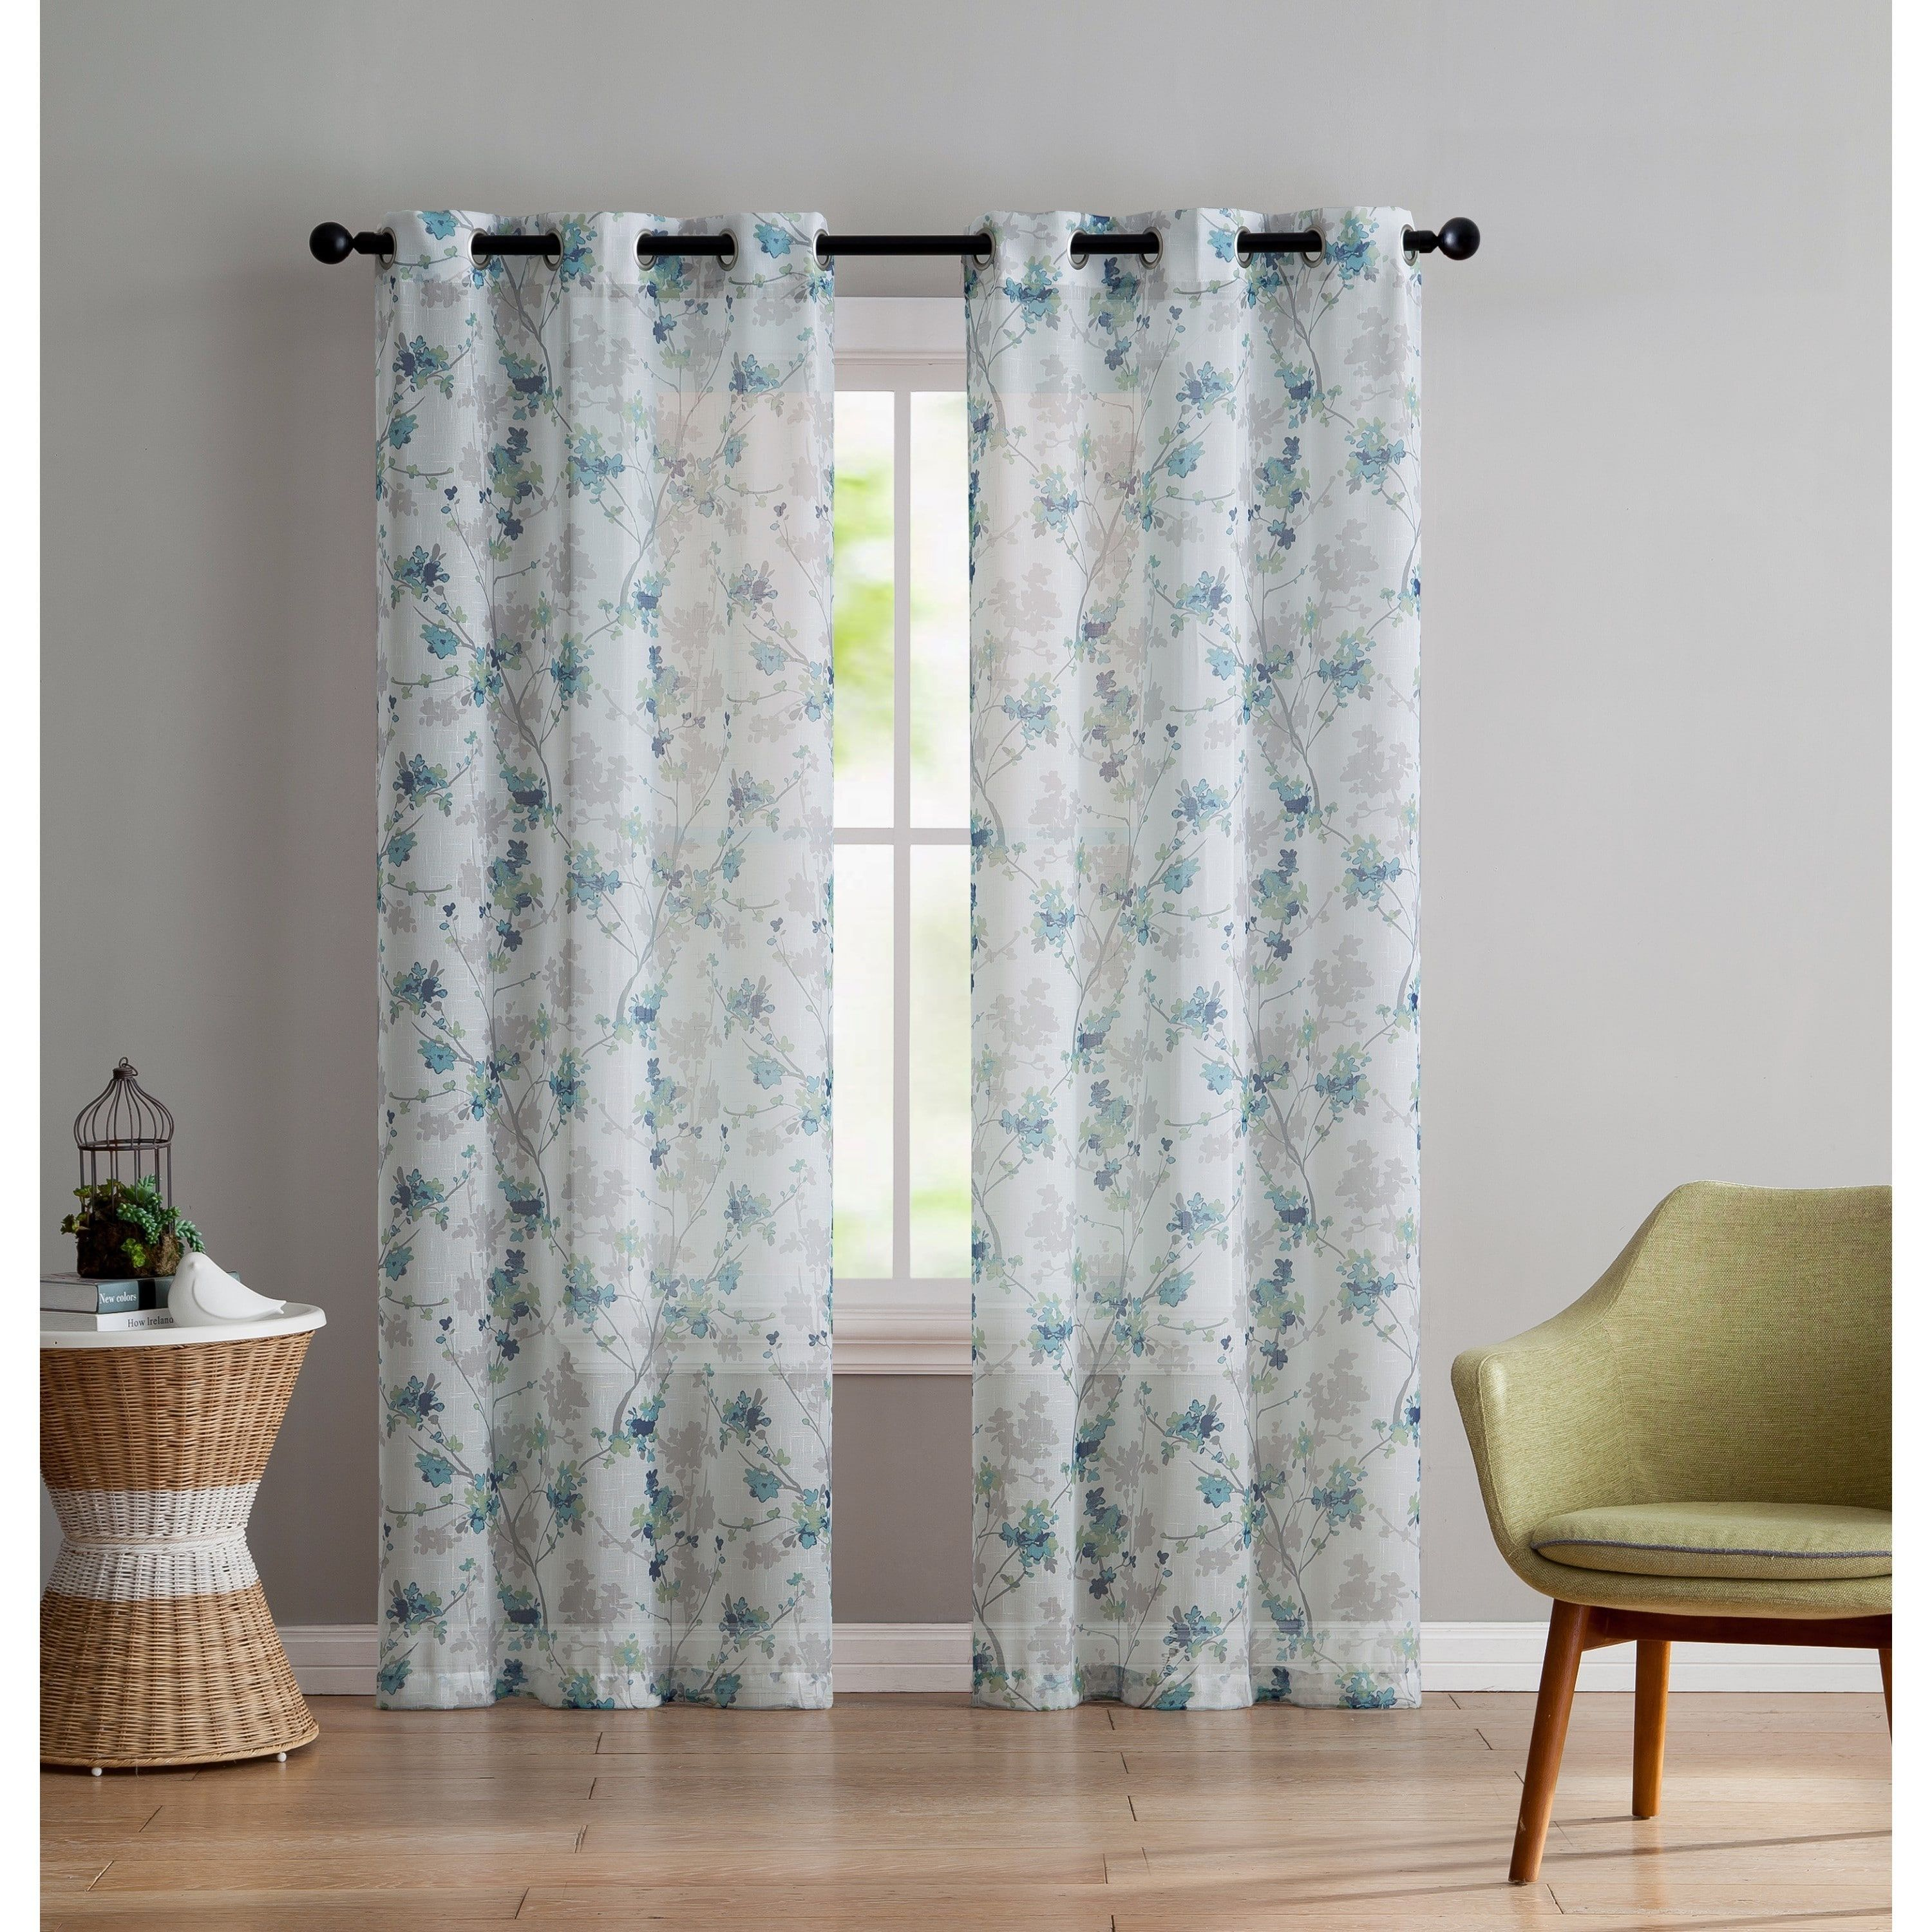 Latest window coverings 2018  vcny home jasmine semisheer printed curtain panel pair  inches